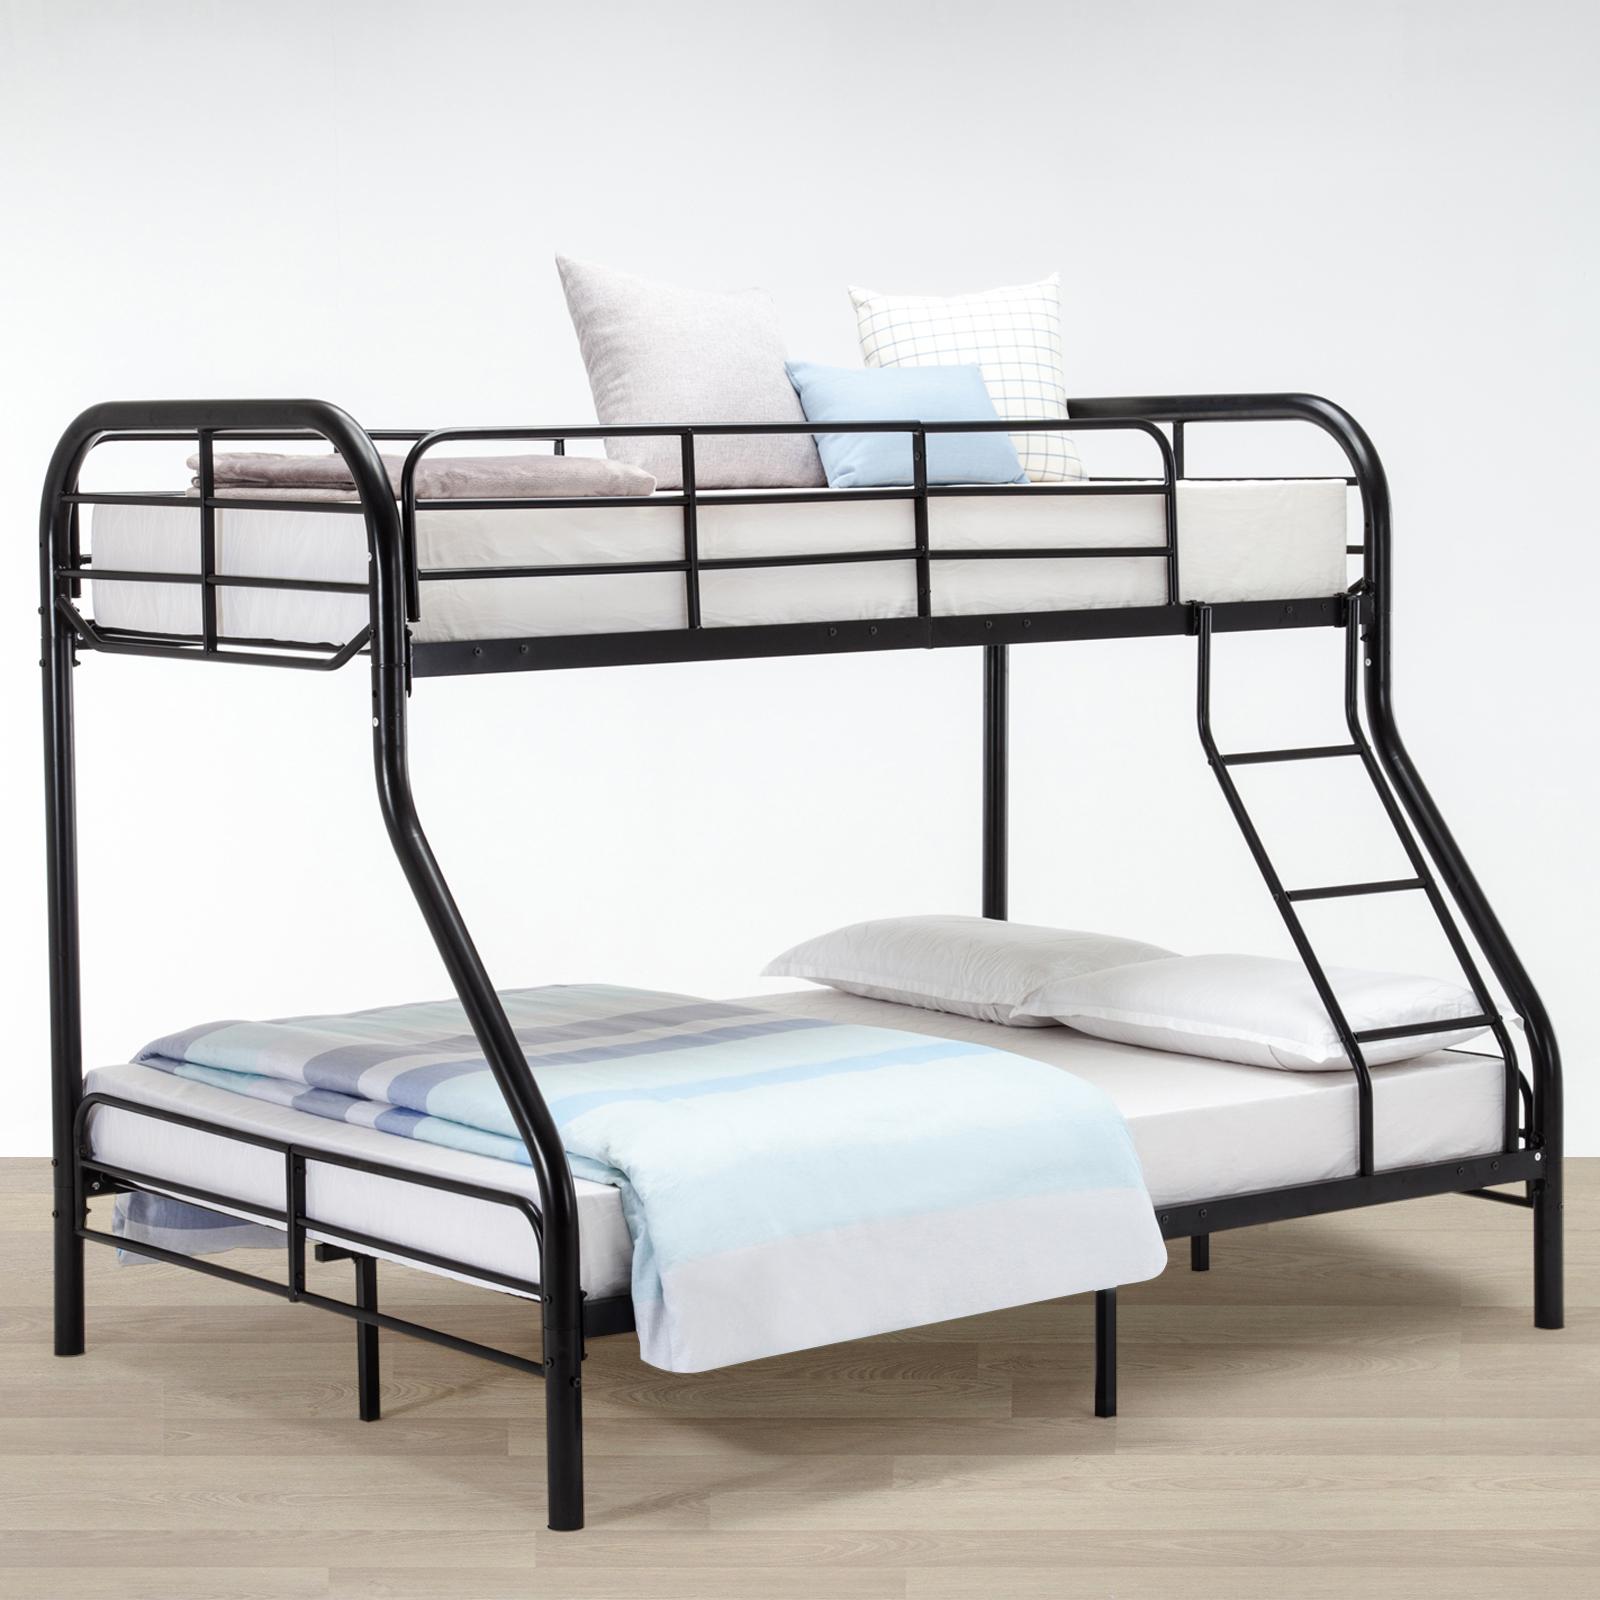 twin over full metal bunk bed frame kids teens adult dorm bedroom furniture ebay. Black Bedroom Furniture Sets. Home Design Ideas